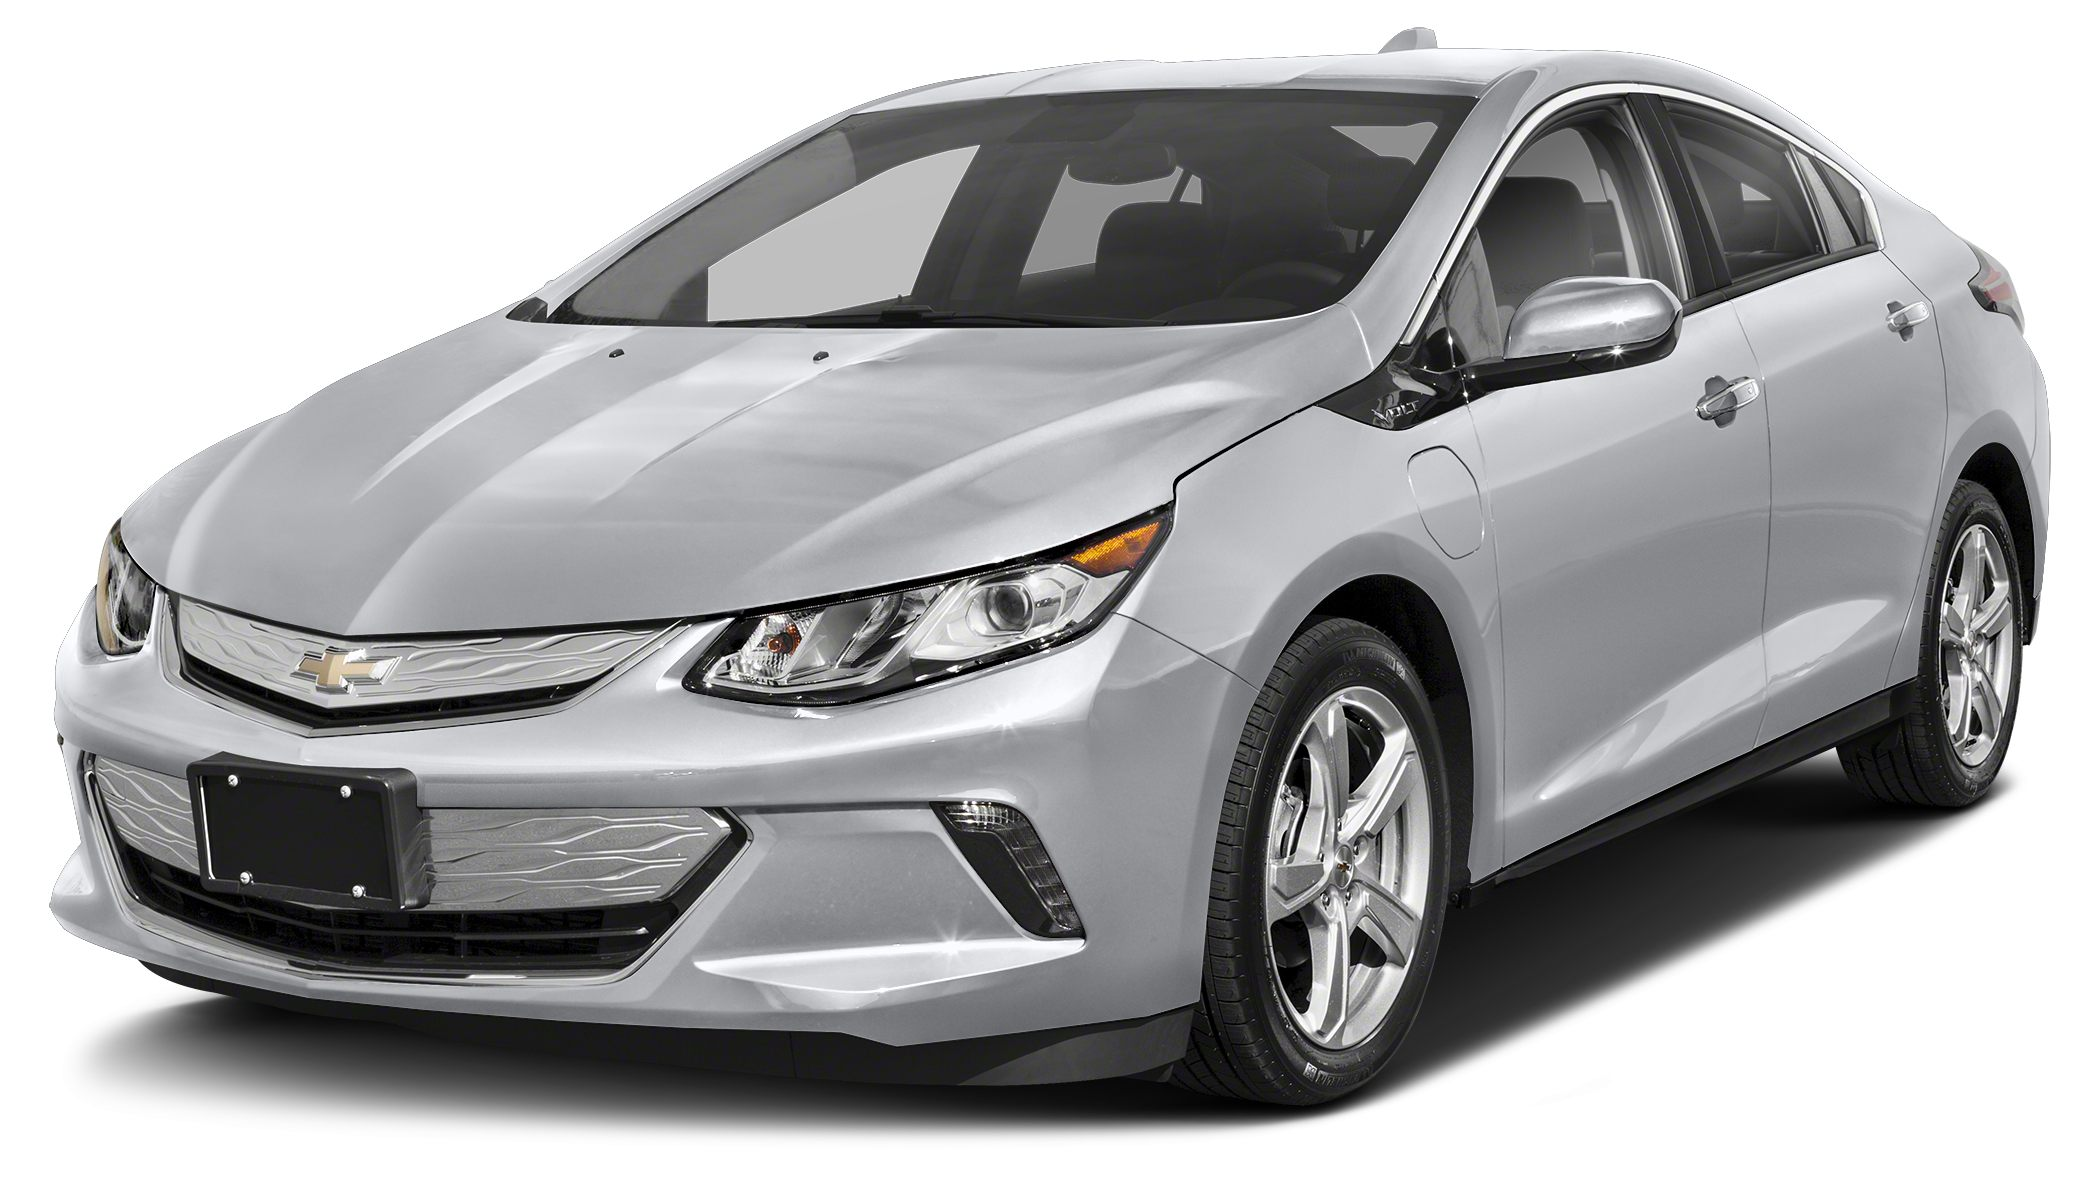 2017 Chevrolet Volt Premier Form meets function in Volt It starts with a sleek and sporty redesig